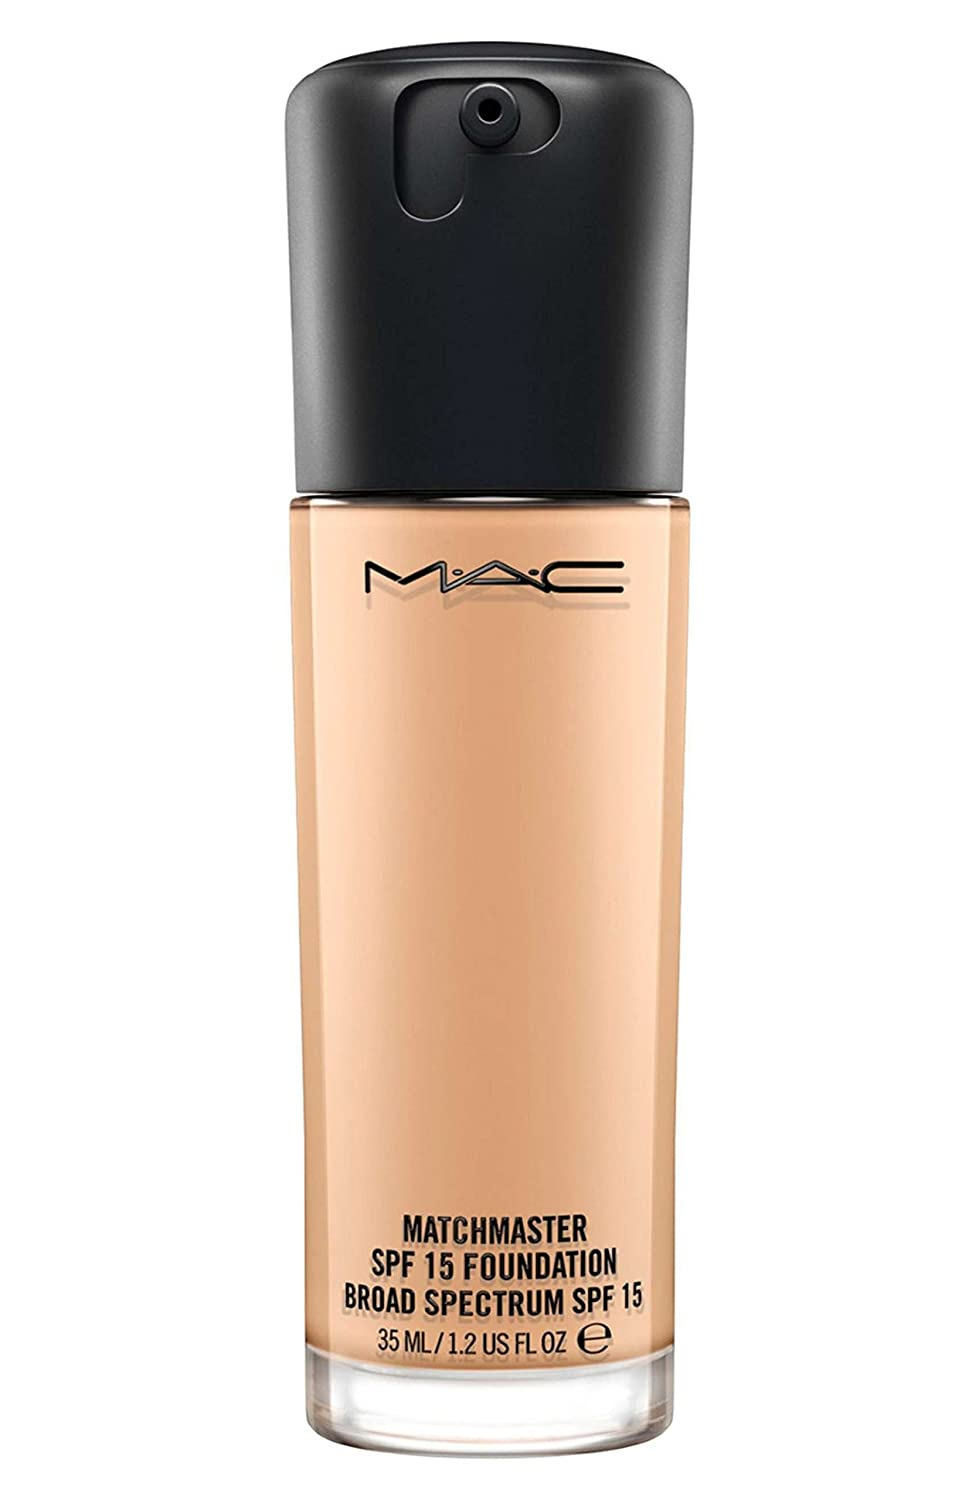 MAC Matchmaster Don't miss the campaign Foundation Animer and price revision SPF 15 -35ml 1.2oz 2.0 -